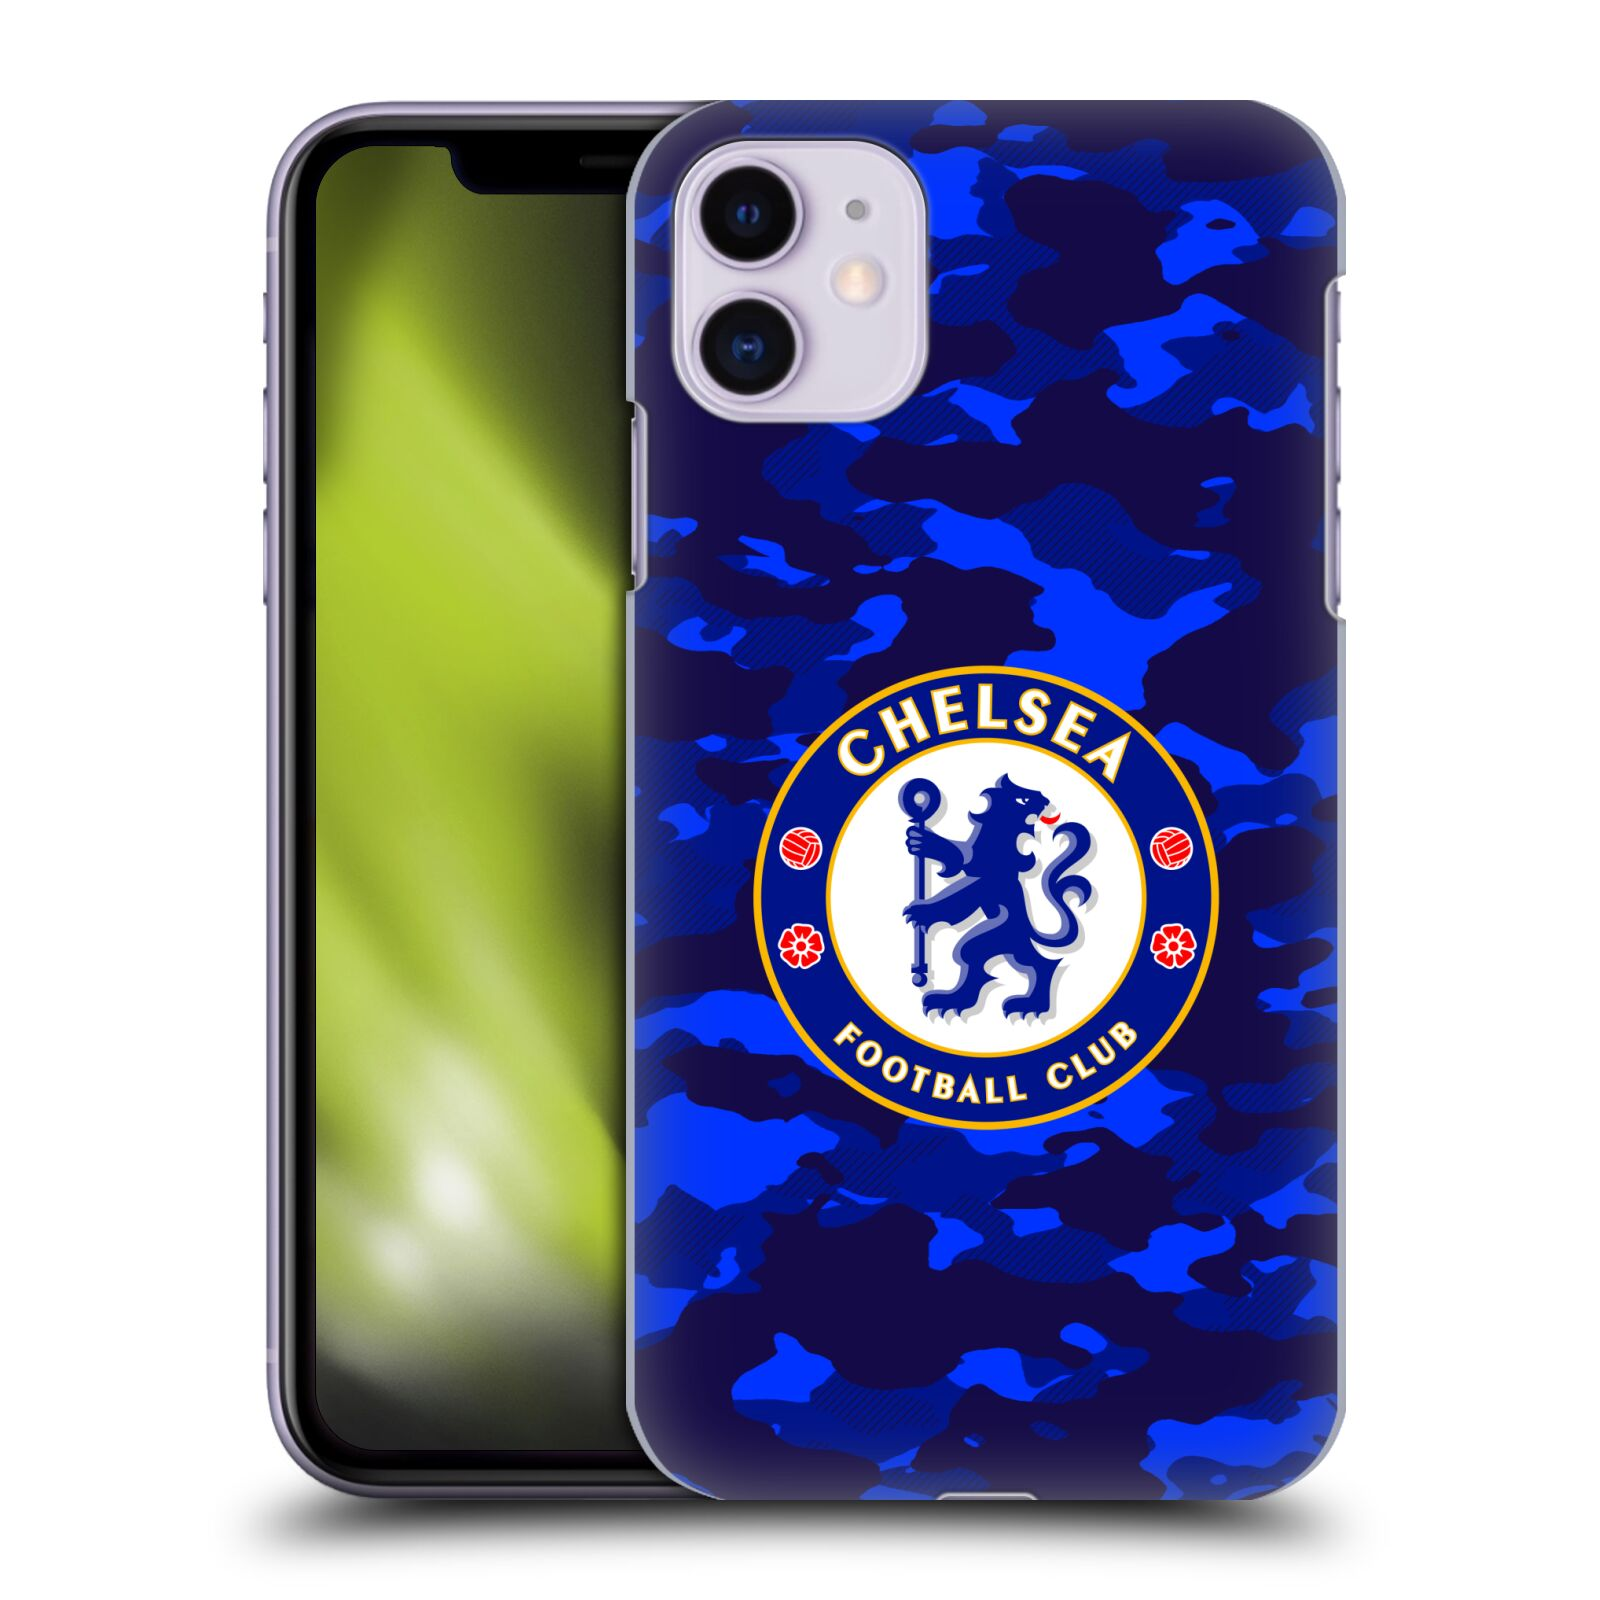 Offizielle Chelsea Football Club 2019/20 Crest Camouflage Hülle für Apple iPhone 11